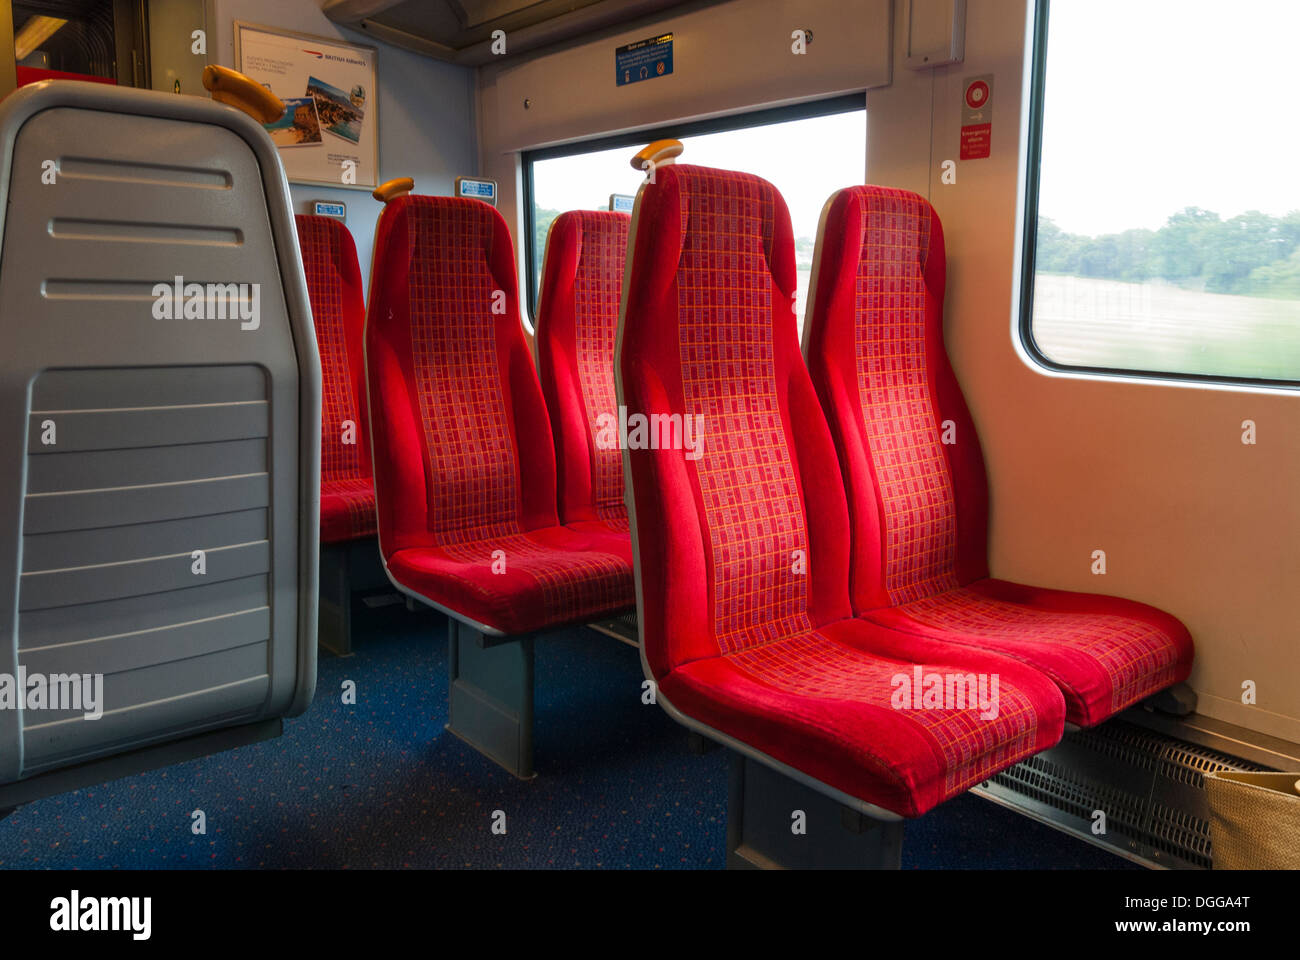 empty seats in railway carriage - Stock Image